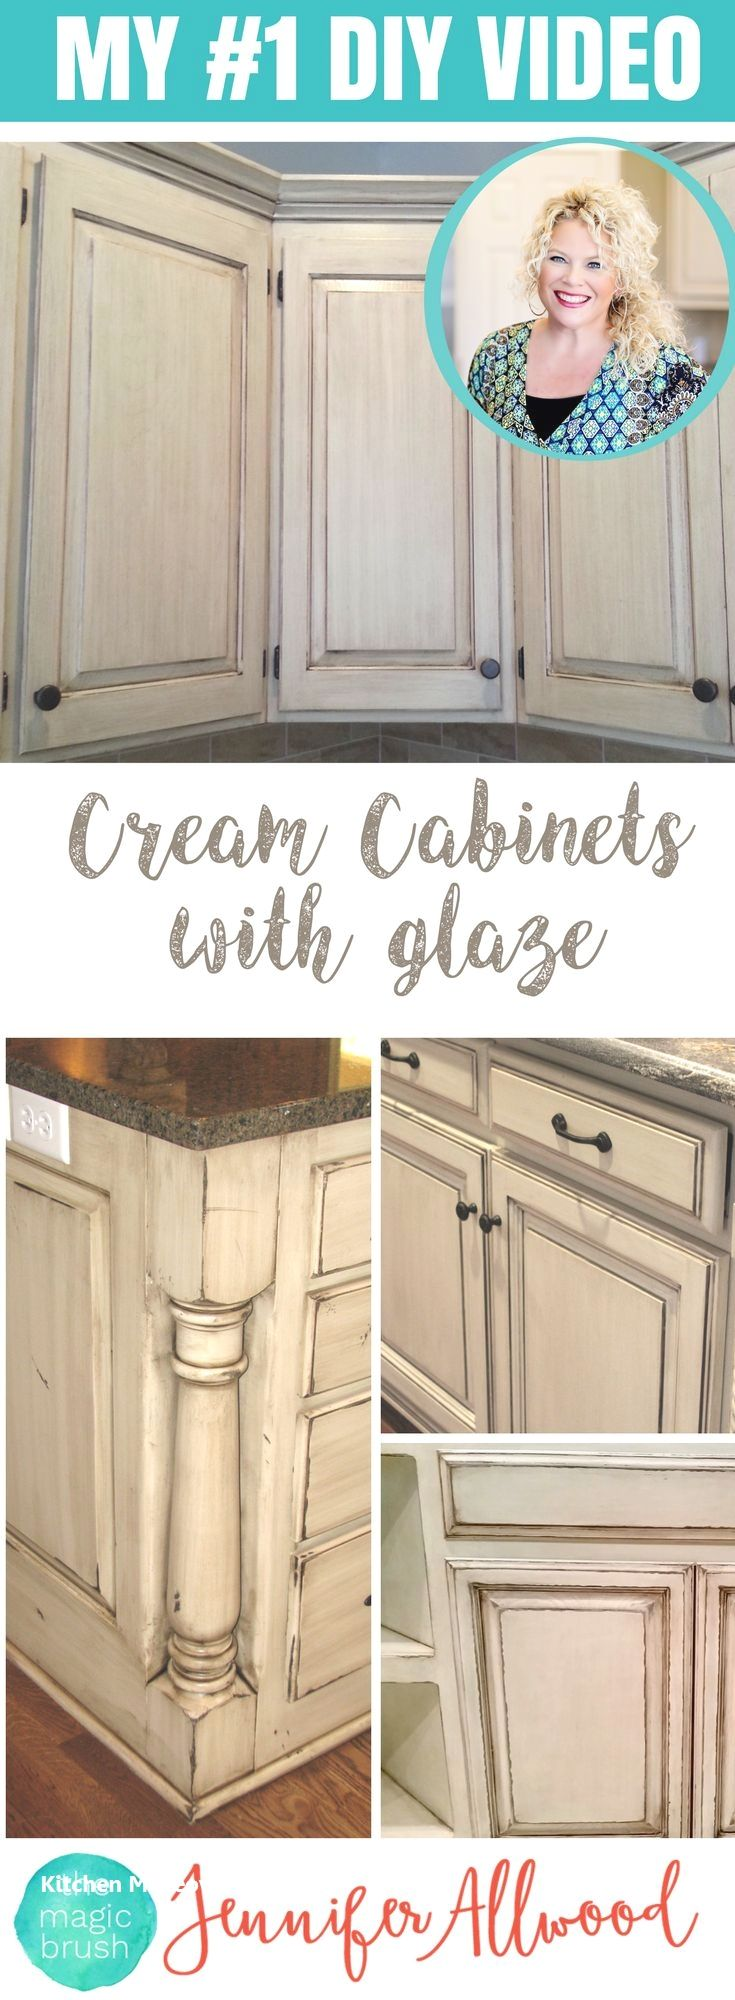 12 Amazing And Cheap Ideas For A Kitchen Make Over 3 Shelves And Hooks Shabby Chic Kitchen Chic Kitchen Painting Cabinets